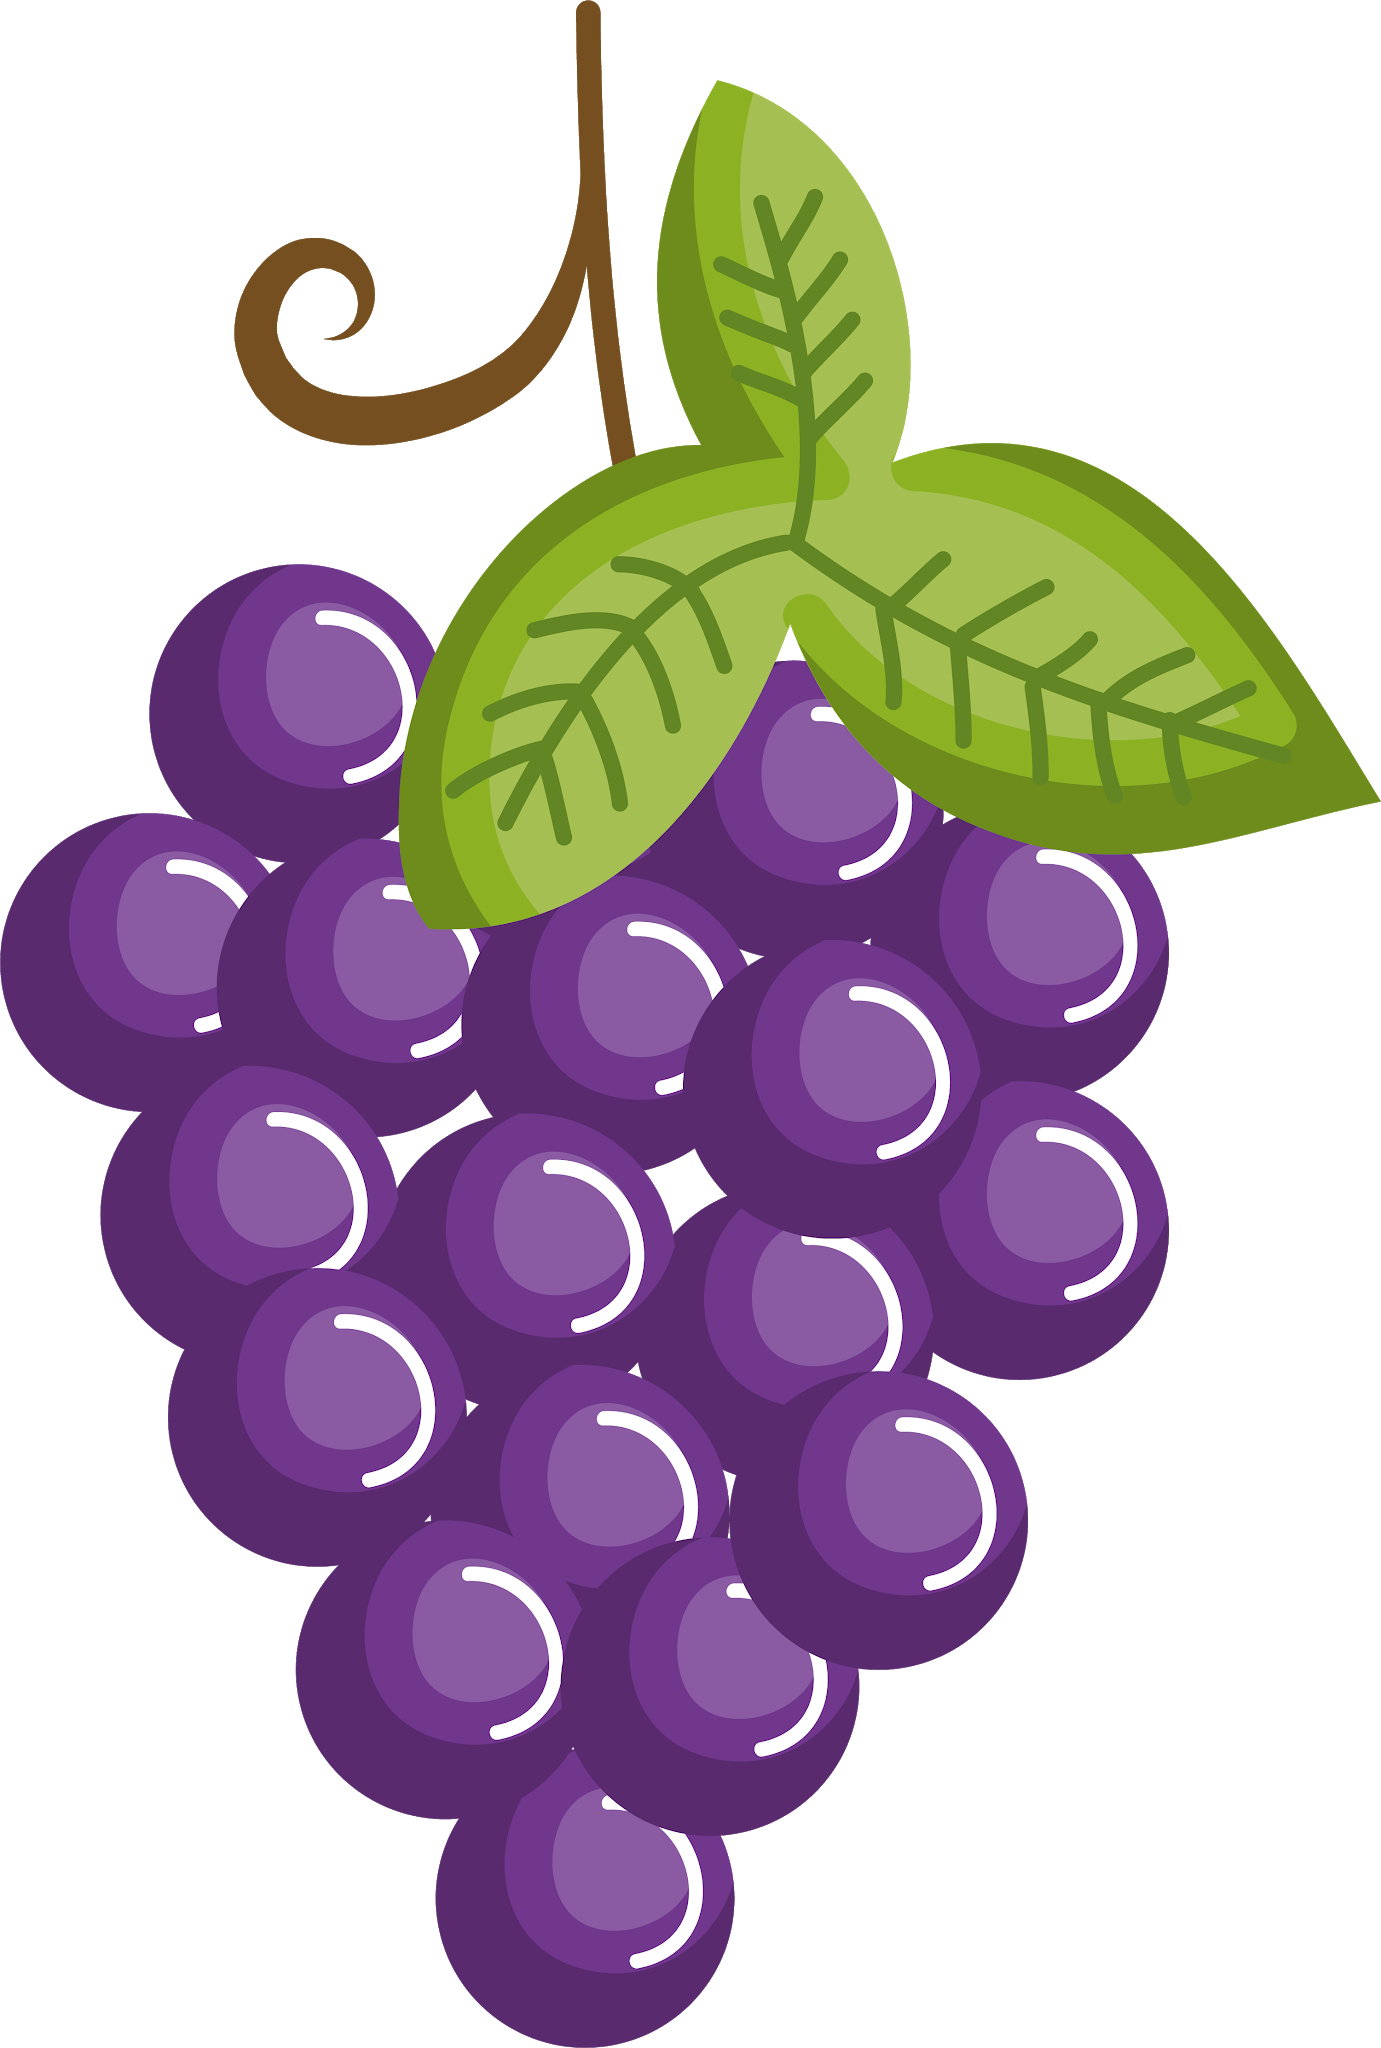 Pin by pngsector on Grape Image & Grape Clip art